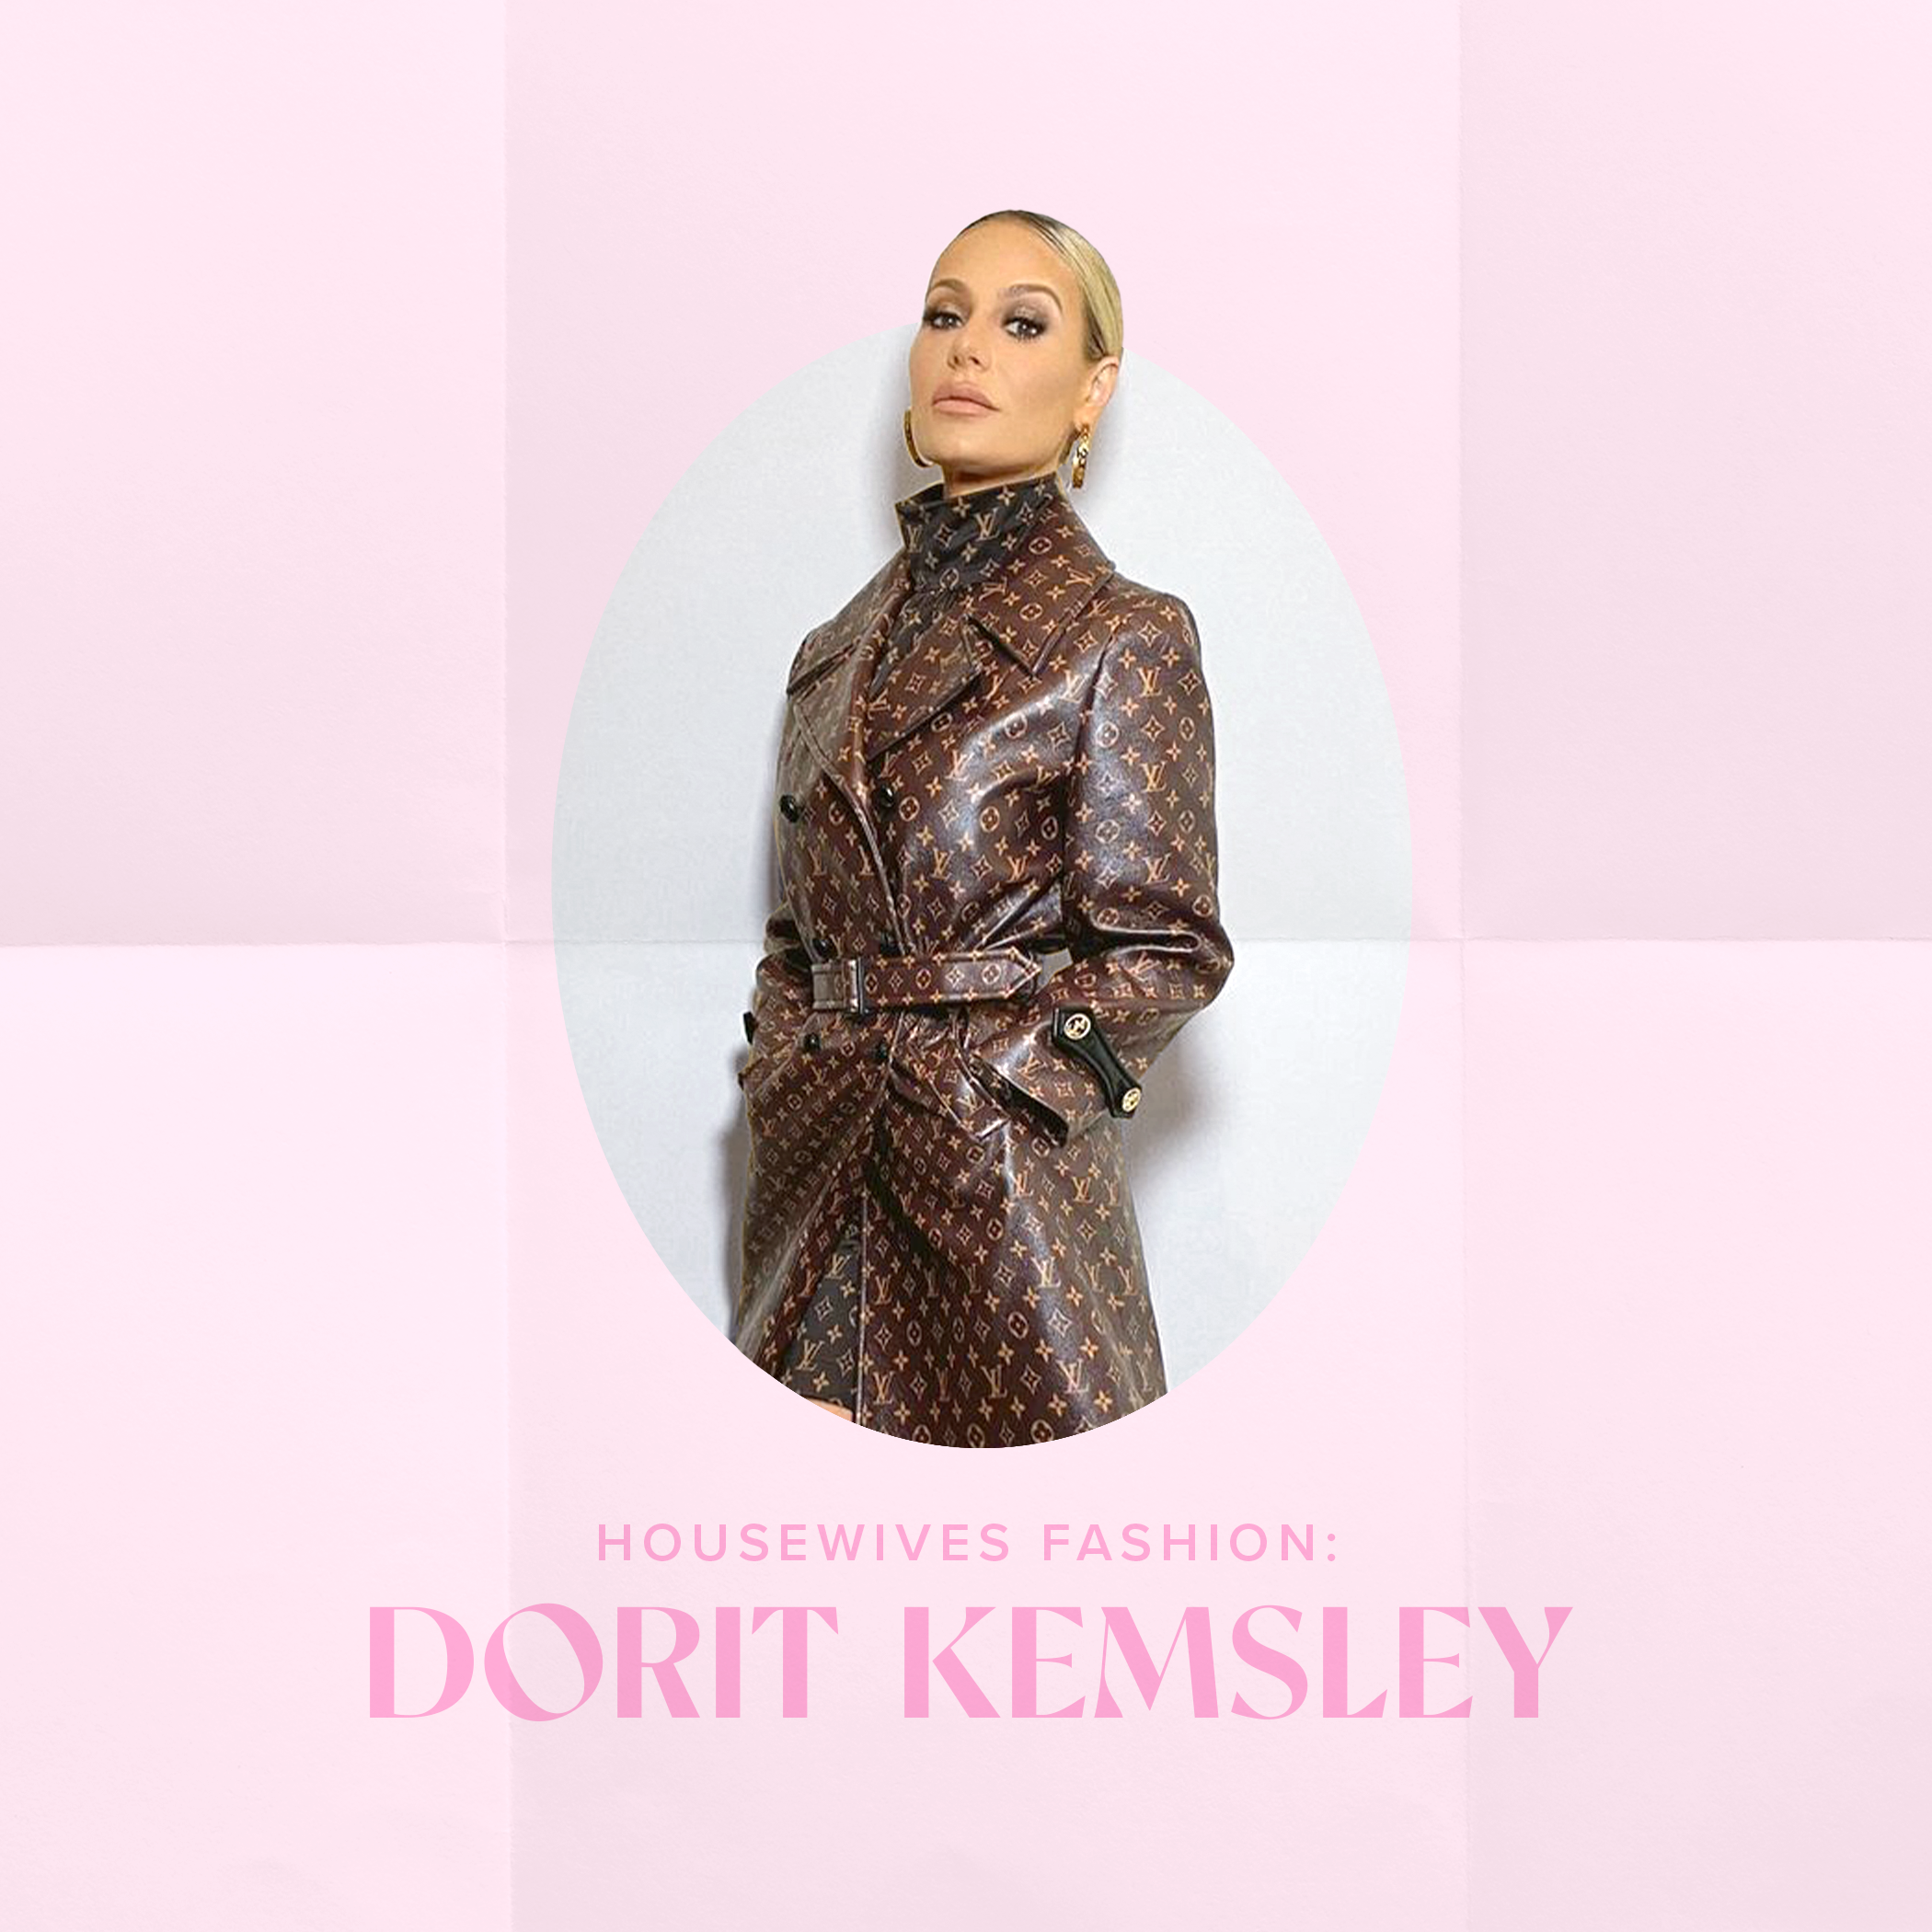 Dorit Kemsley In the spotlight: Housewife fashion